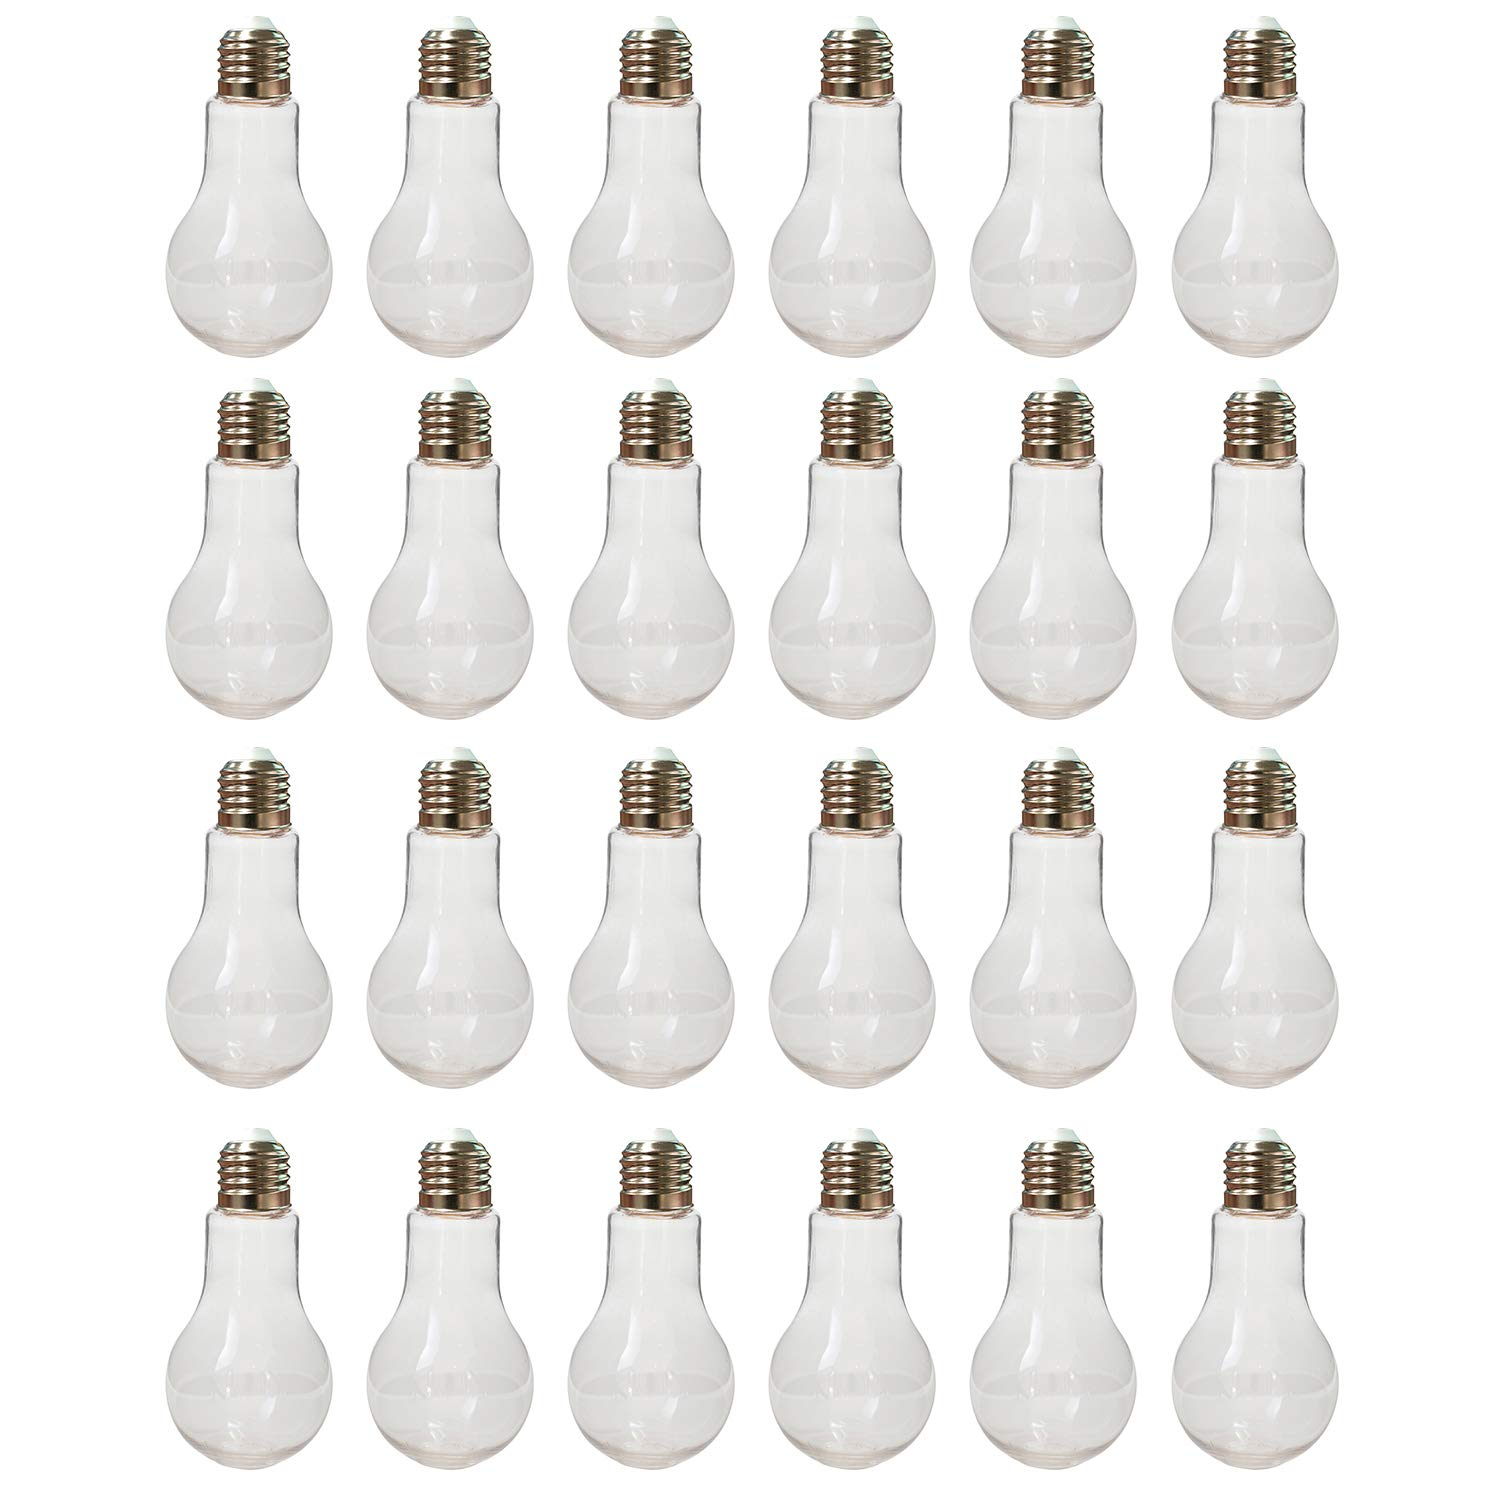 Houseables Plastic Light Bulbs, Fillable Craft Jars, 5.5 oz, 1'' W x 4.9'' L, 24 Pack, Clear, Fake Lightbulb Cups, Container for Candy, Drinking, Christmas Ornaments, Party Favors, Crafts, Decorations